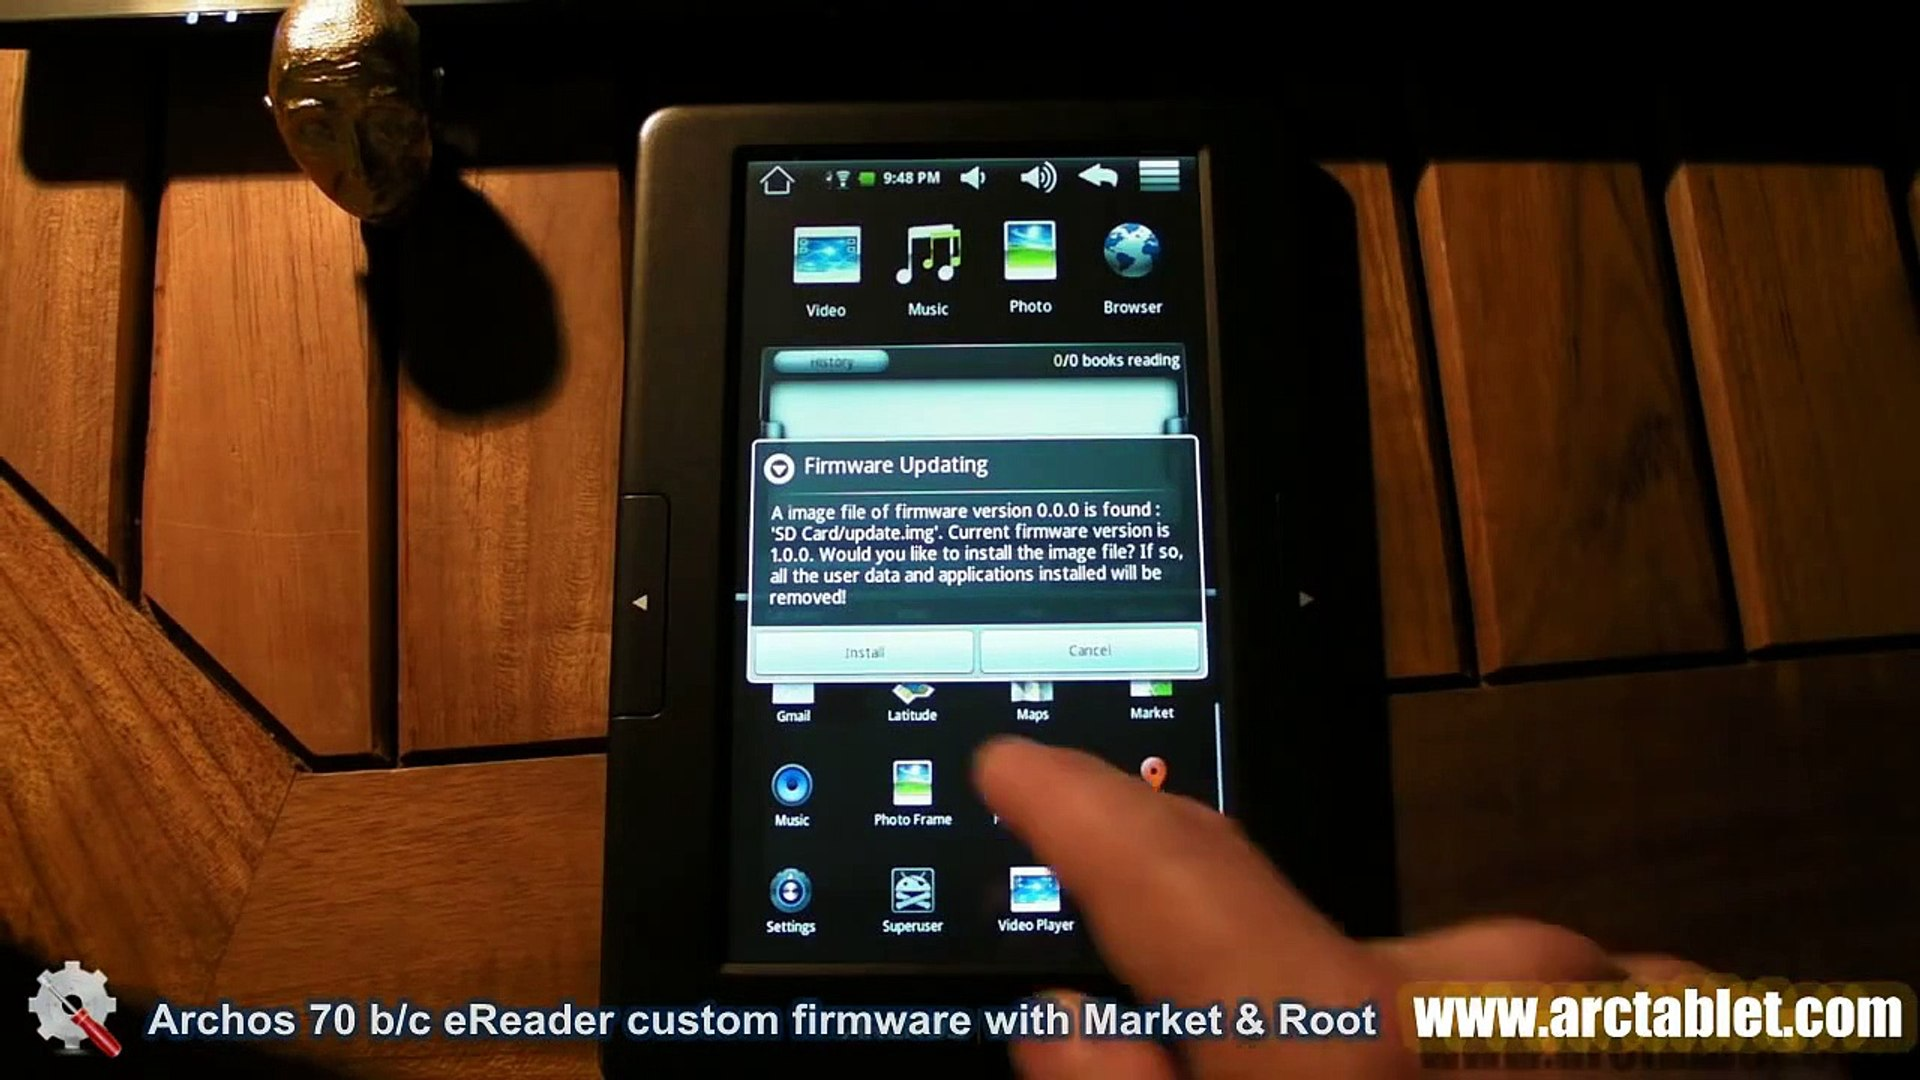 Archos 70b eReader custom firmware with Android Market and root